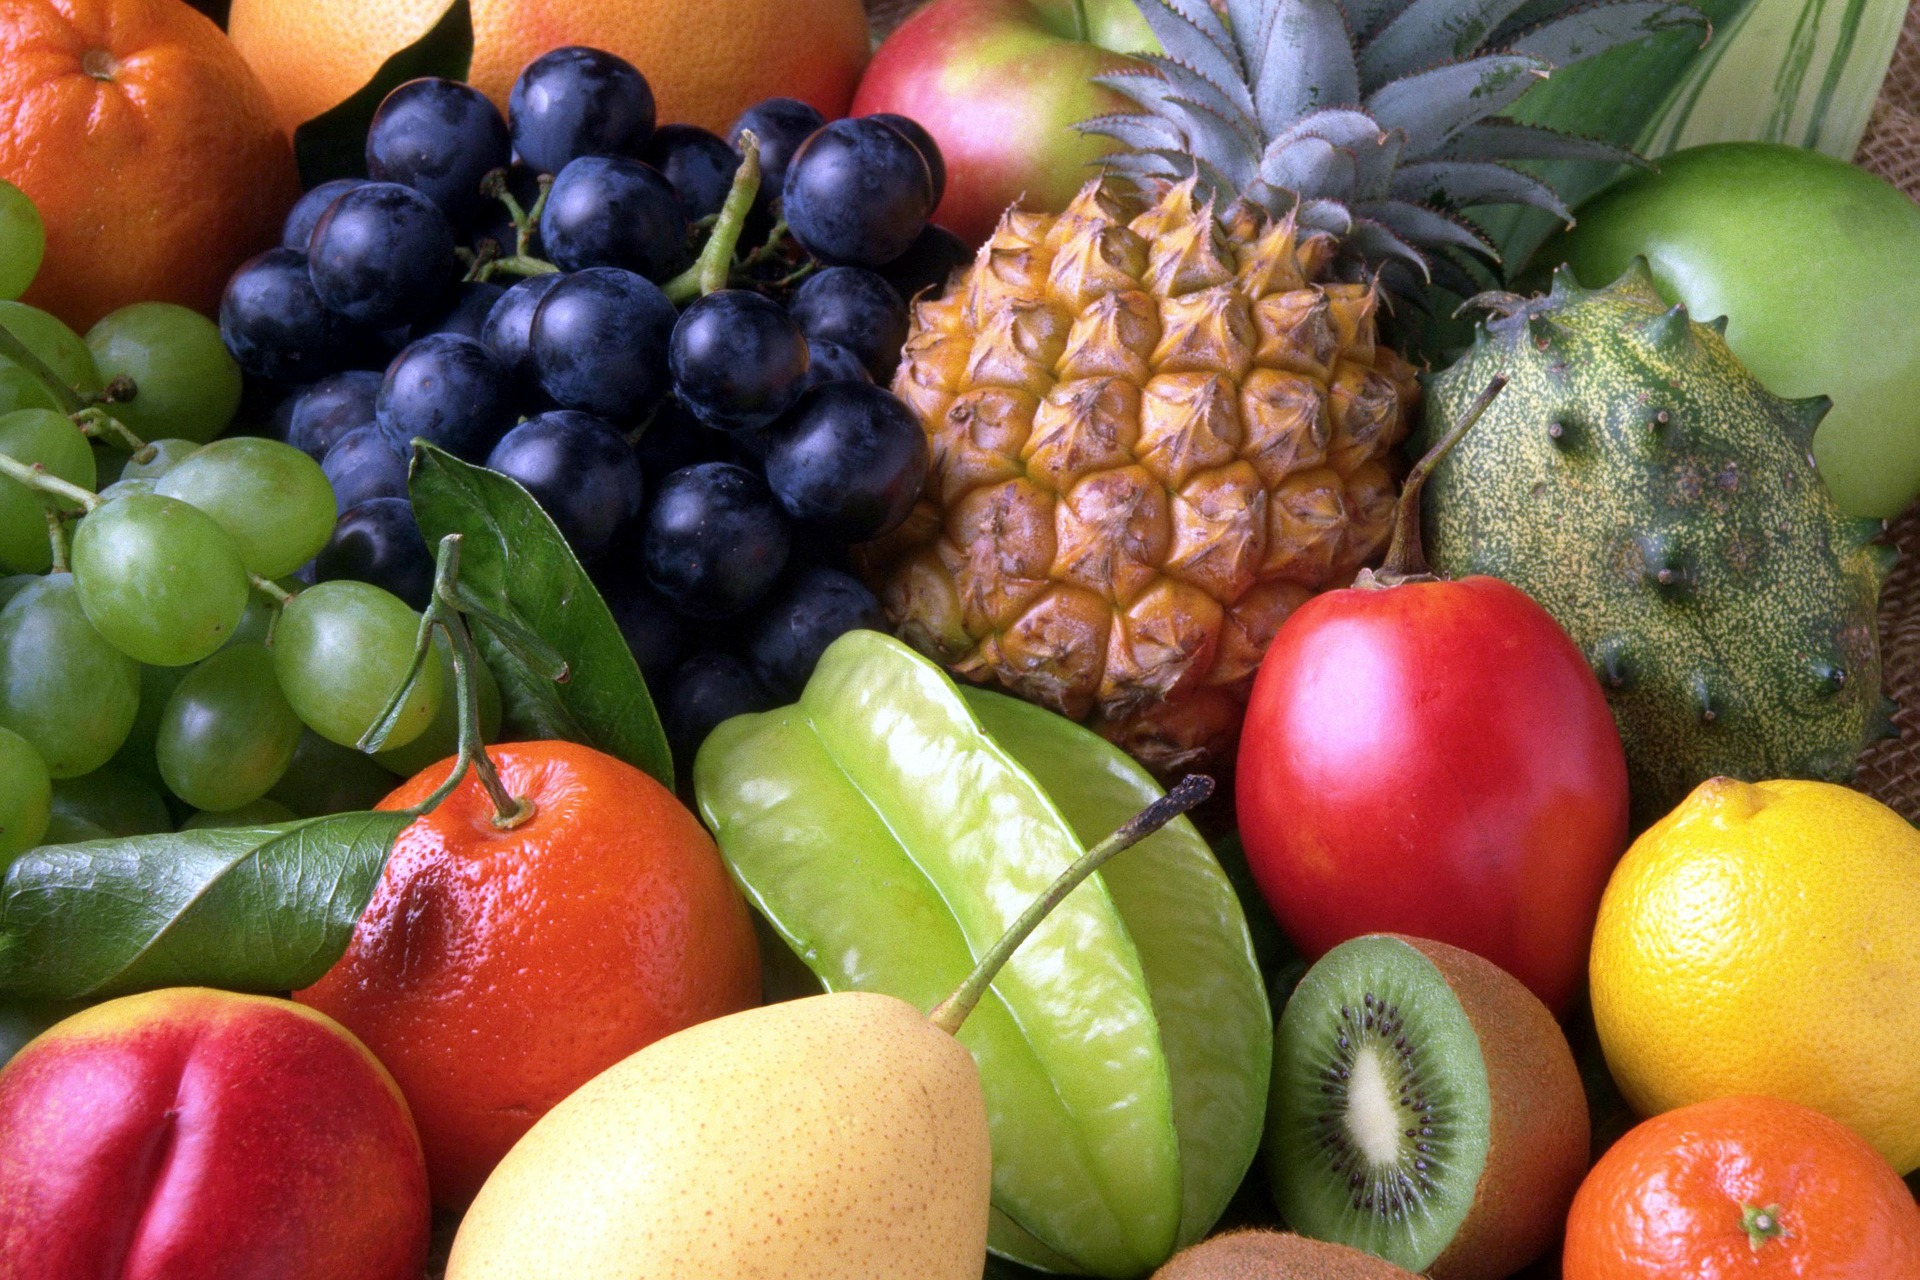 Eating Fruit May Improve Fertility